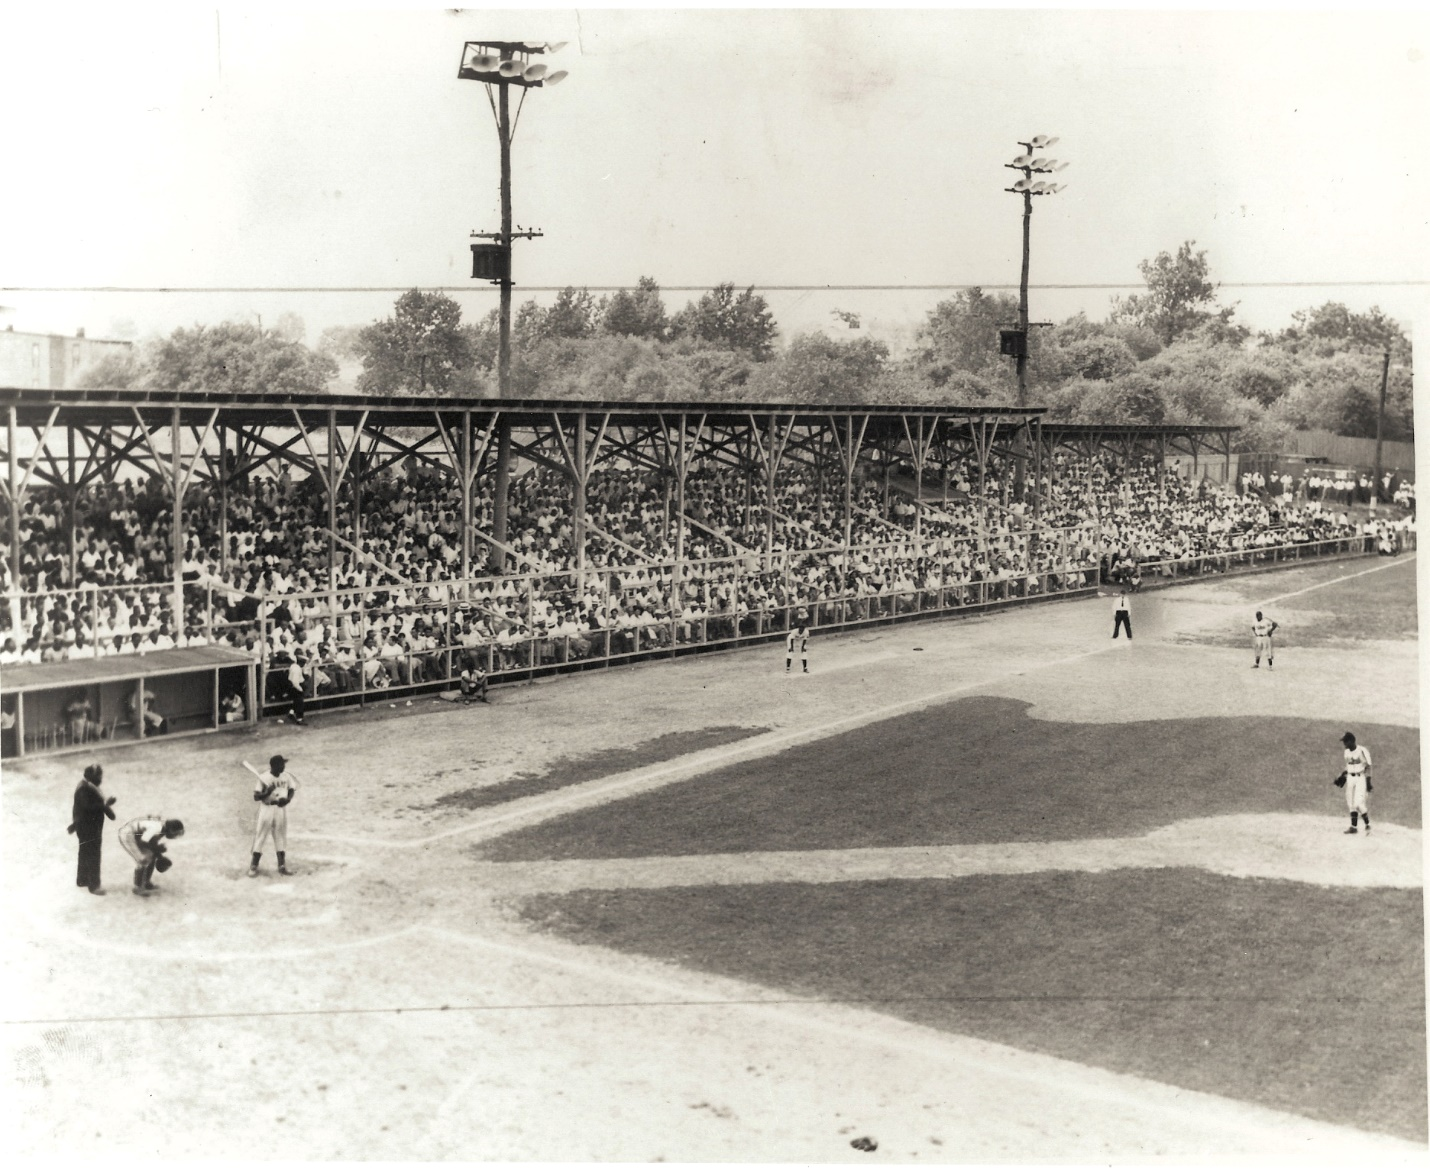 In August of 1932, Gus Greenlee added permanent lights to the Crawford home field. (NOIRTECH RESEARCH INC.)